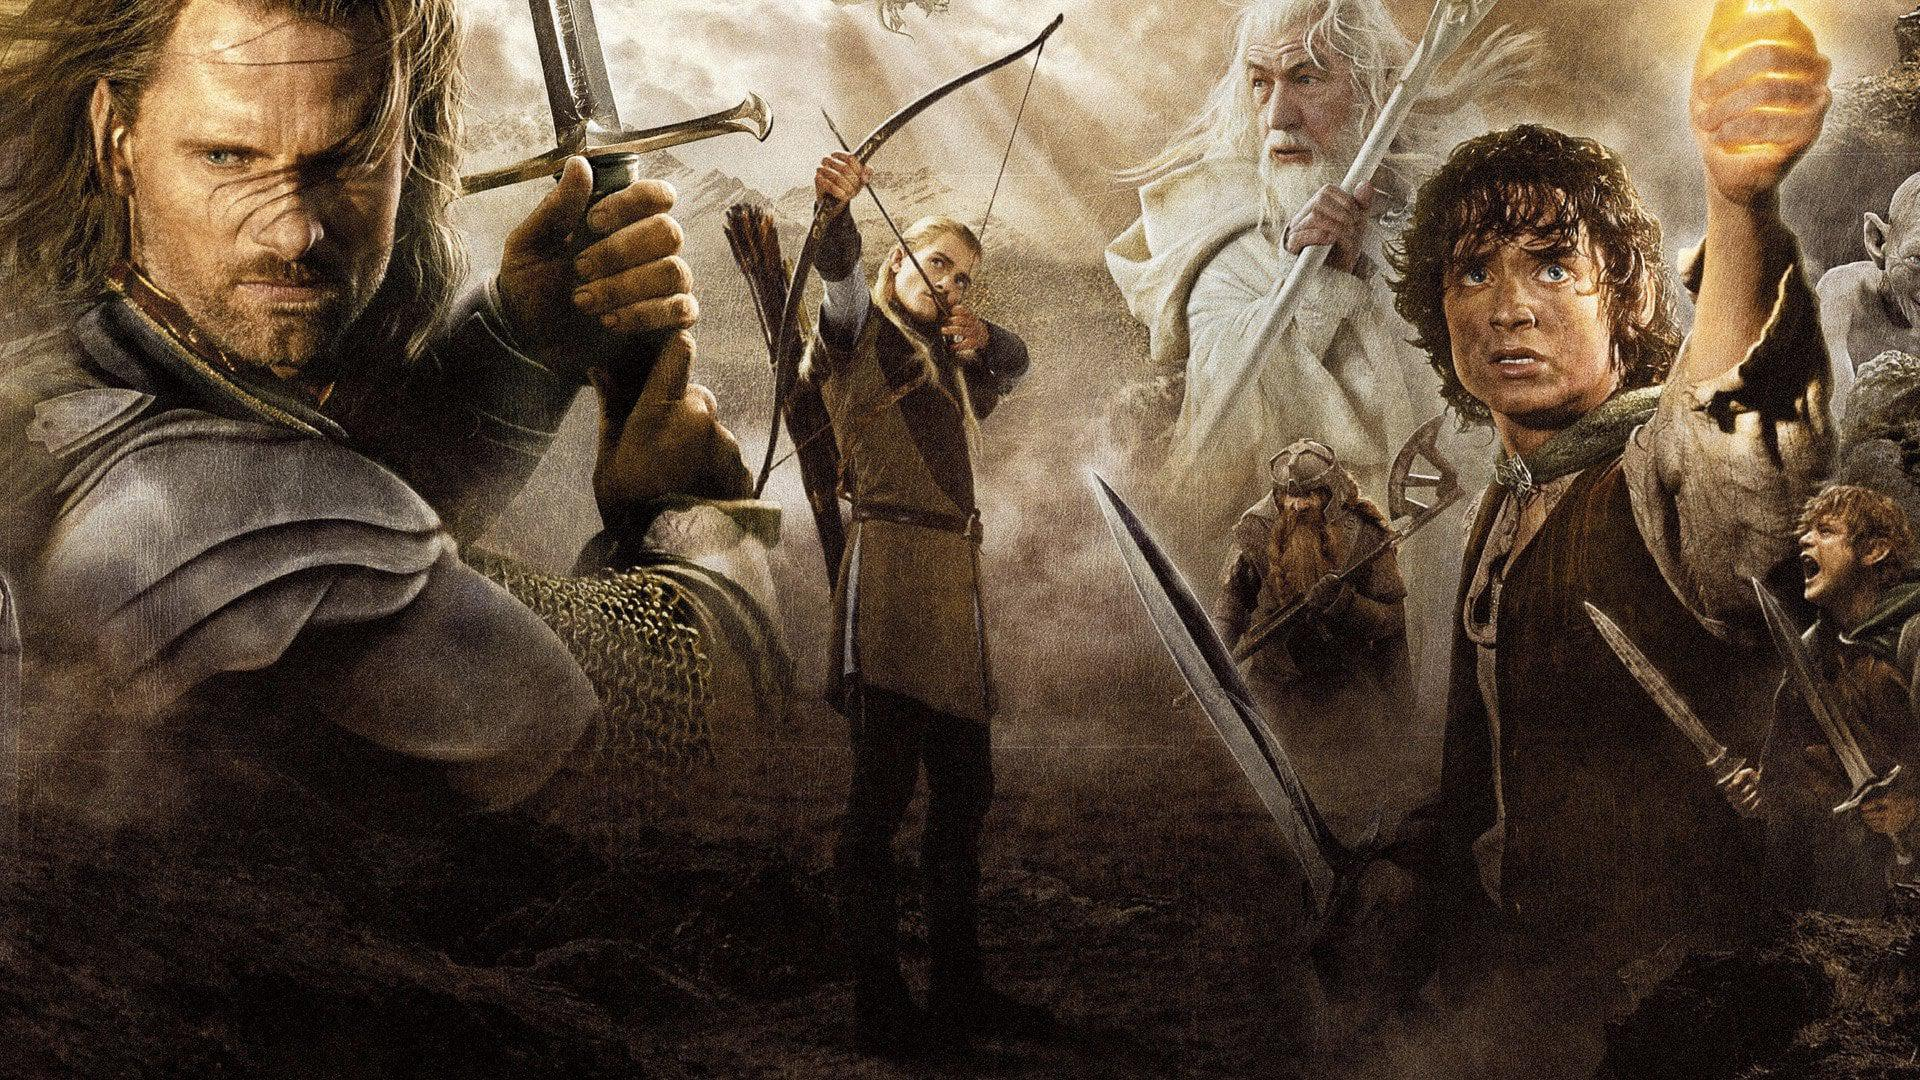 lord of the rings Amazon TV   Aragorn   Lord of the Rings Amazon TV, Aragorn, Lord of the Rings, Νέα Ζηλανδία